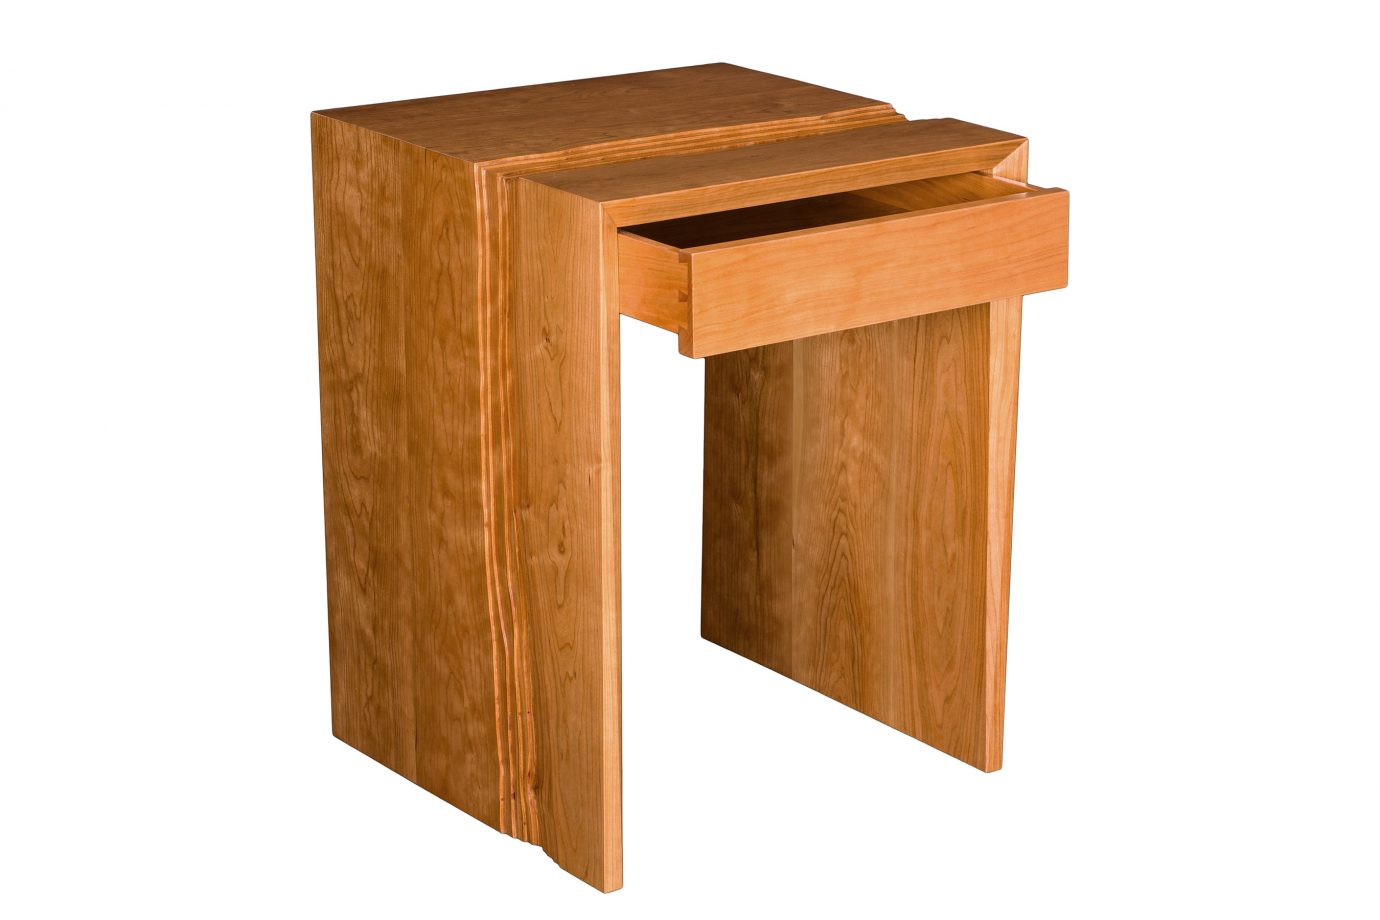 Rivers Waterfall End Table with Drawer. Shown in cherry.